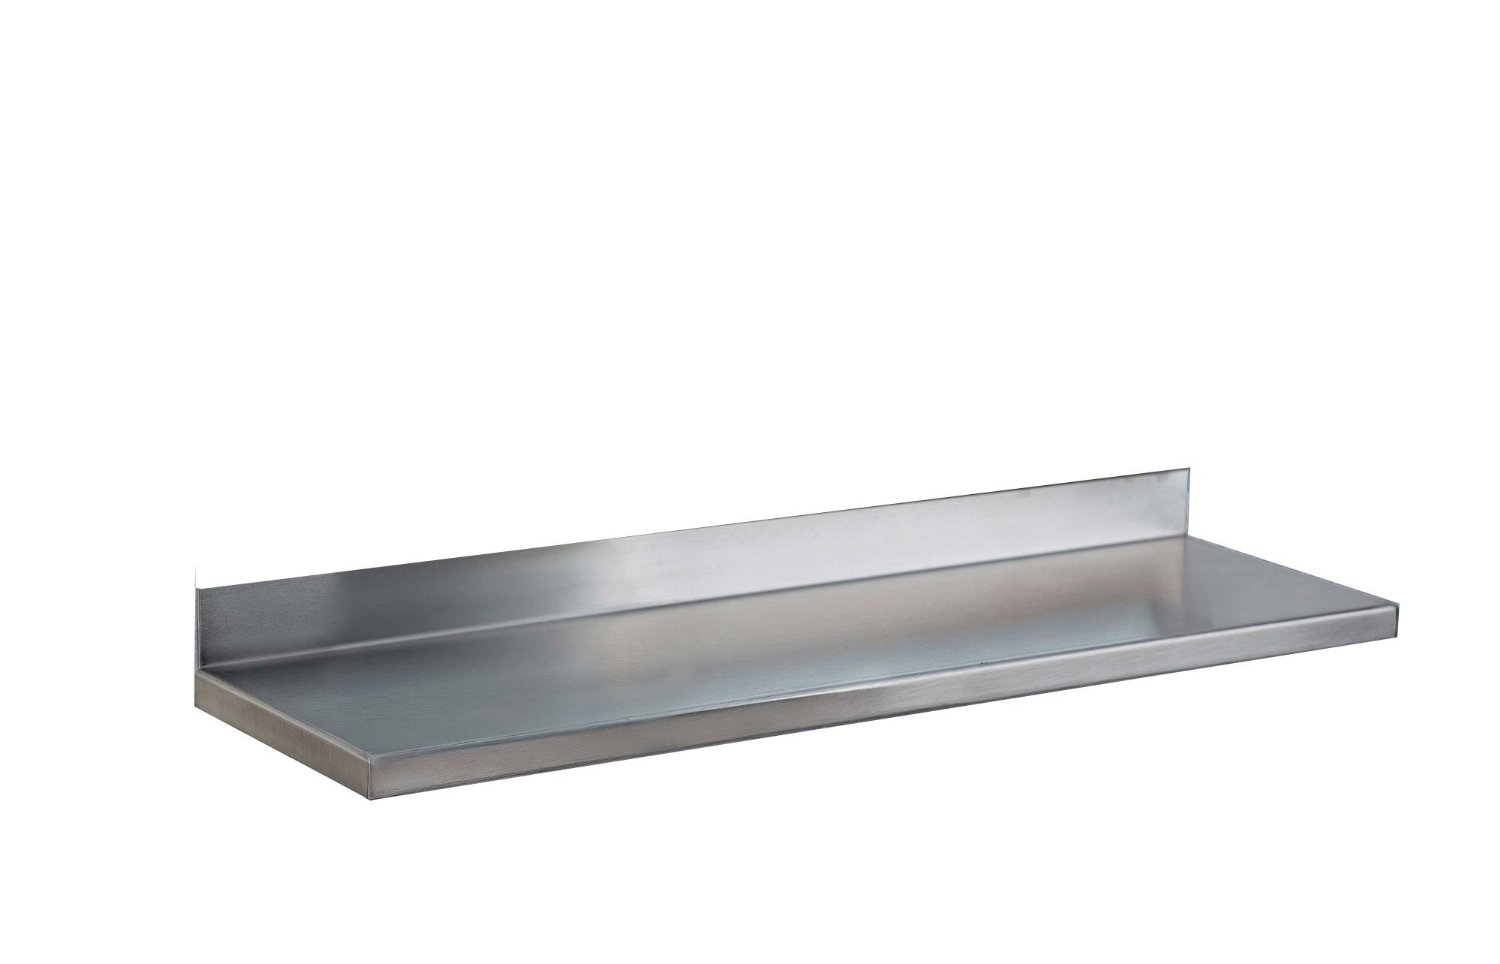 84-inch x 6-inch, Integral shelf, bright finish